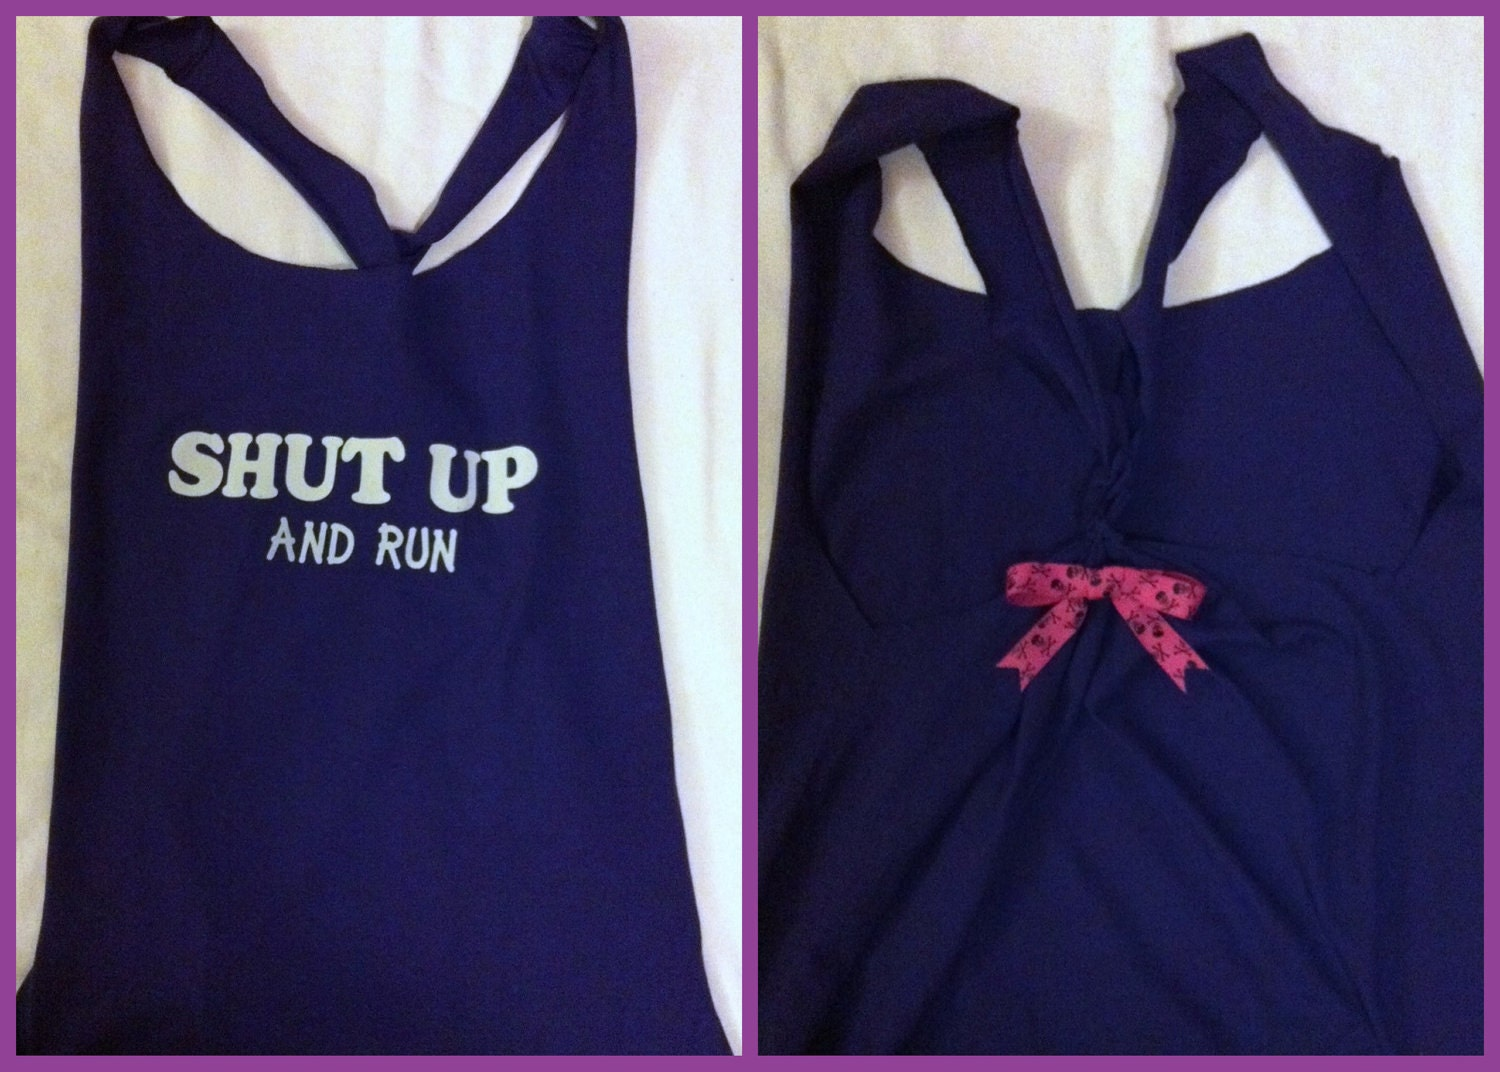 Shut Up and Run Racerback Work-out Tank Top